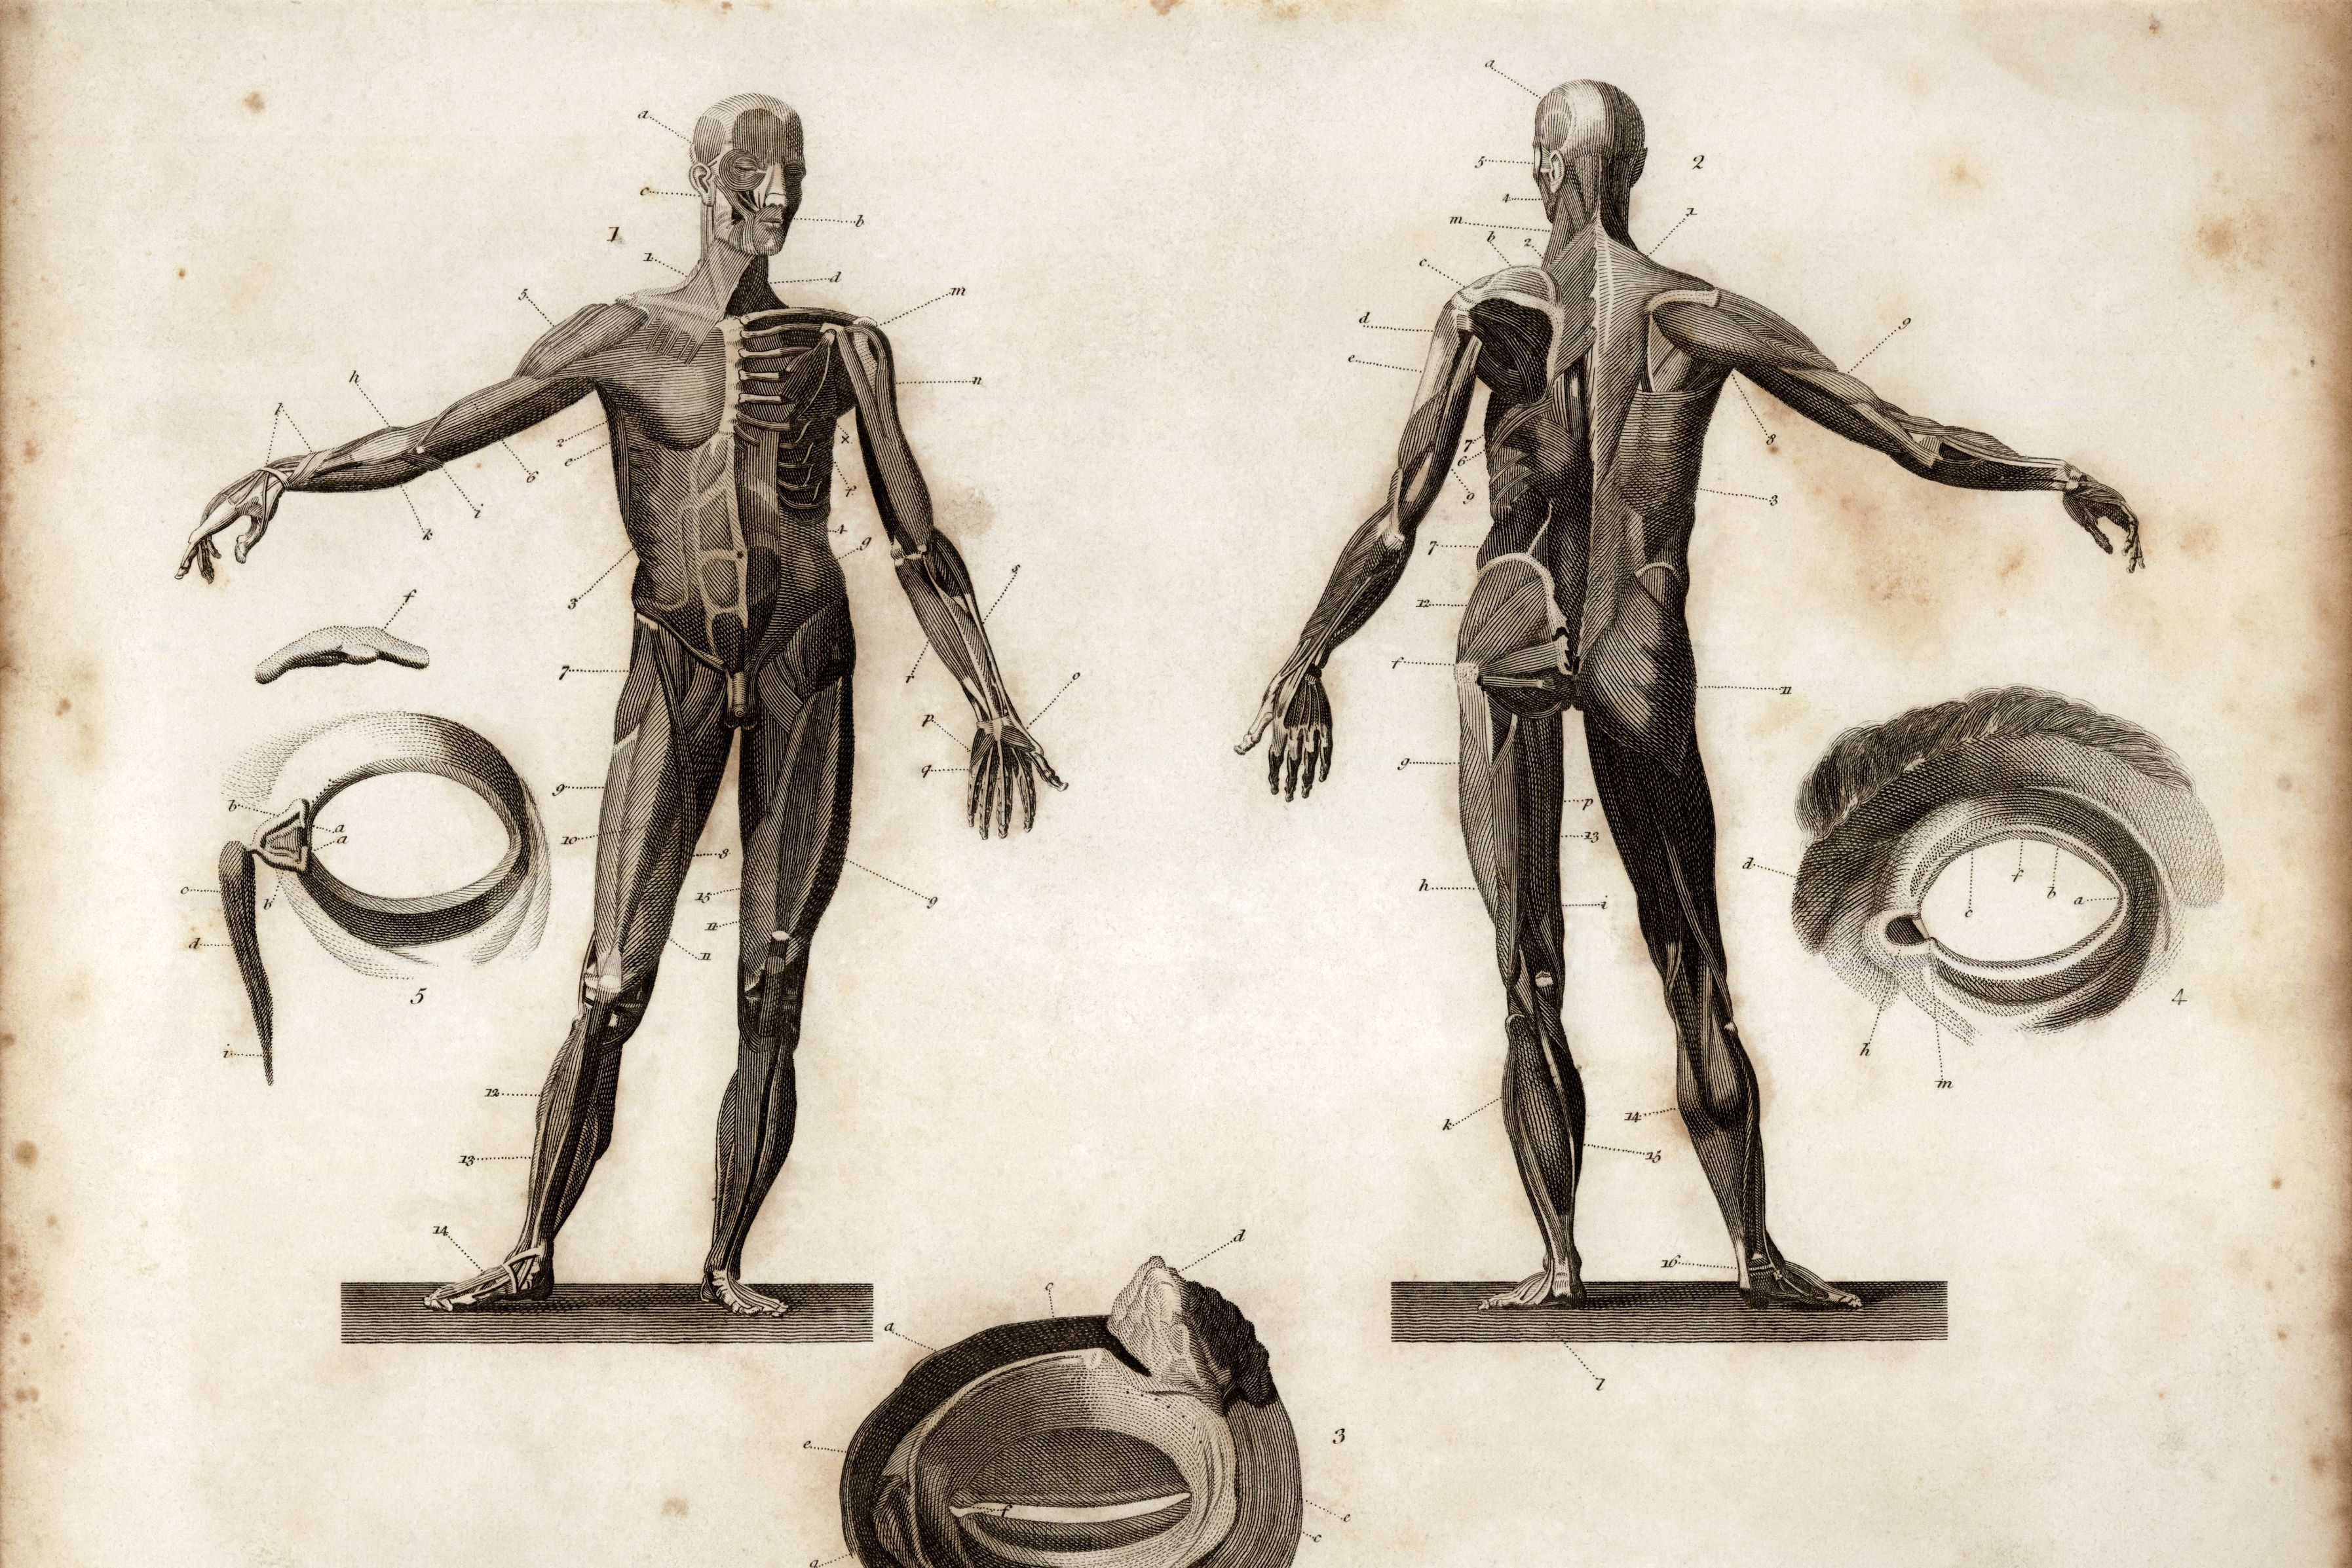 Engraving depicting frontal and posterior anatomy of a human